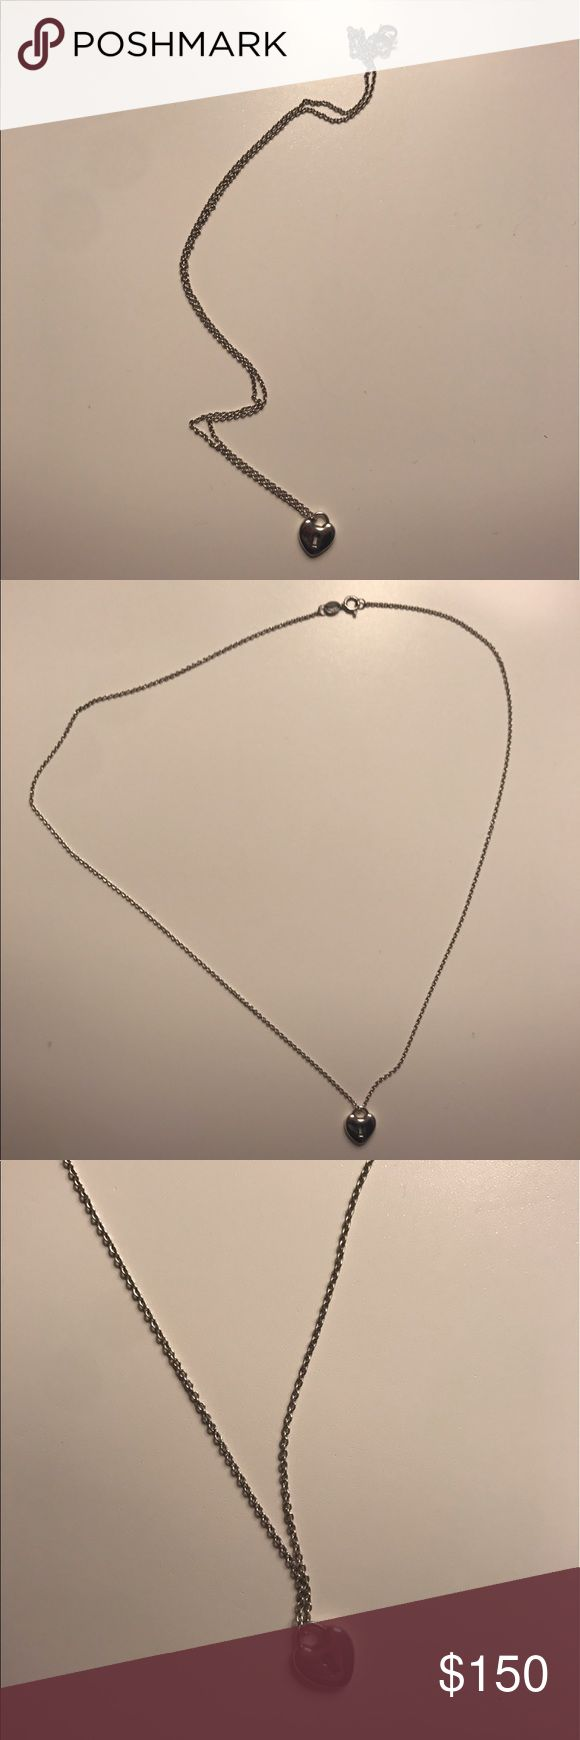 AUTHENTIC Tiffany and Co.  heart keyhole necklace Real Tiffany silver necklace. Small, spotless pendant on a silver chain. Beautiful for everyday. Tiffany & Co. Jewelry Necklaces